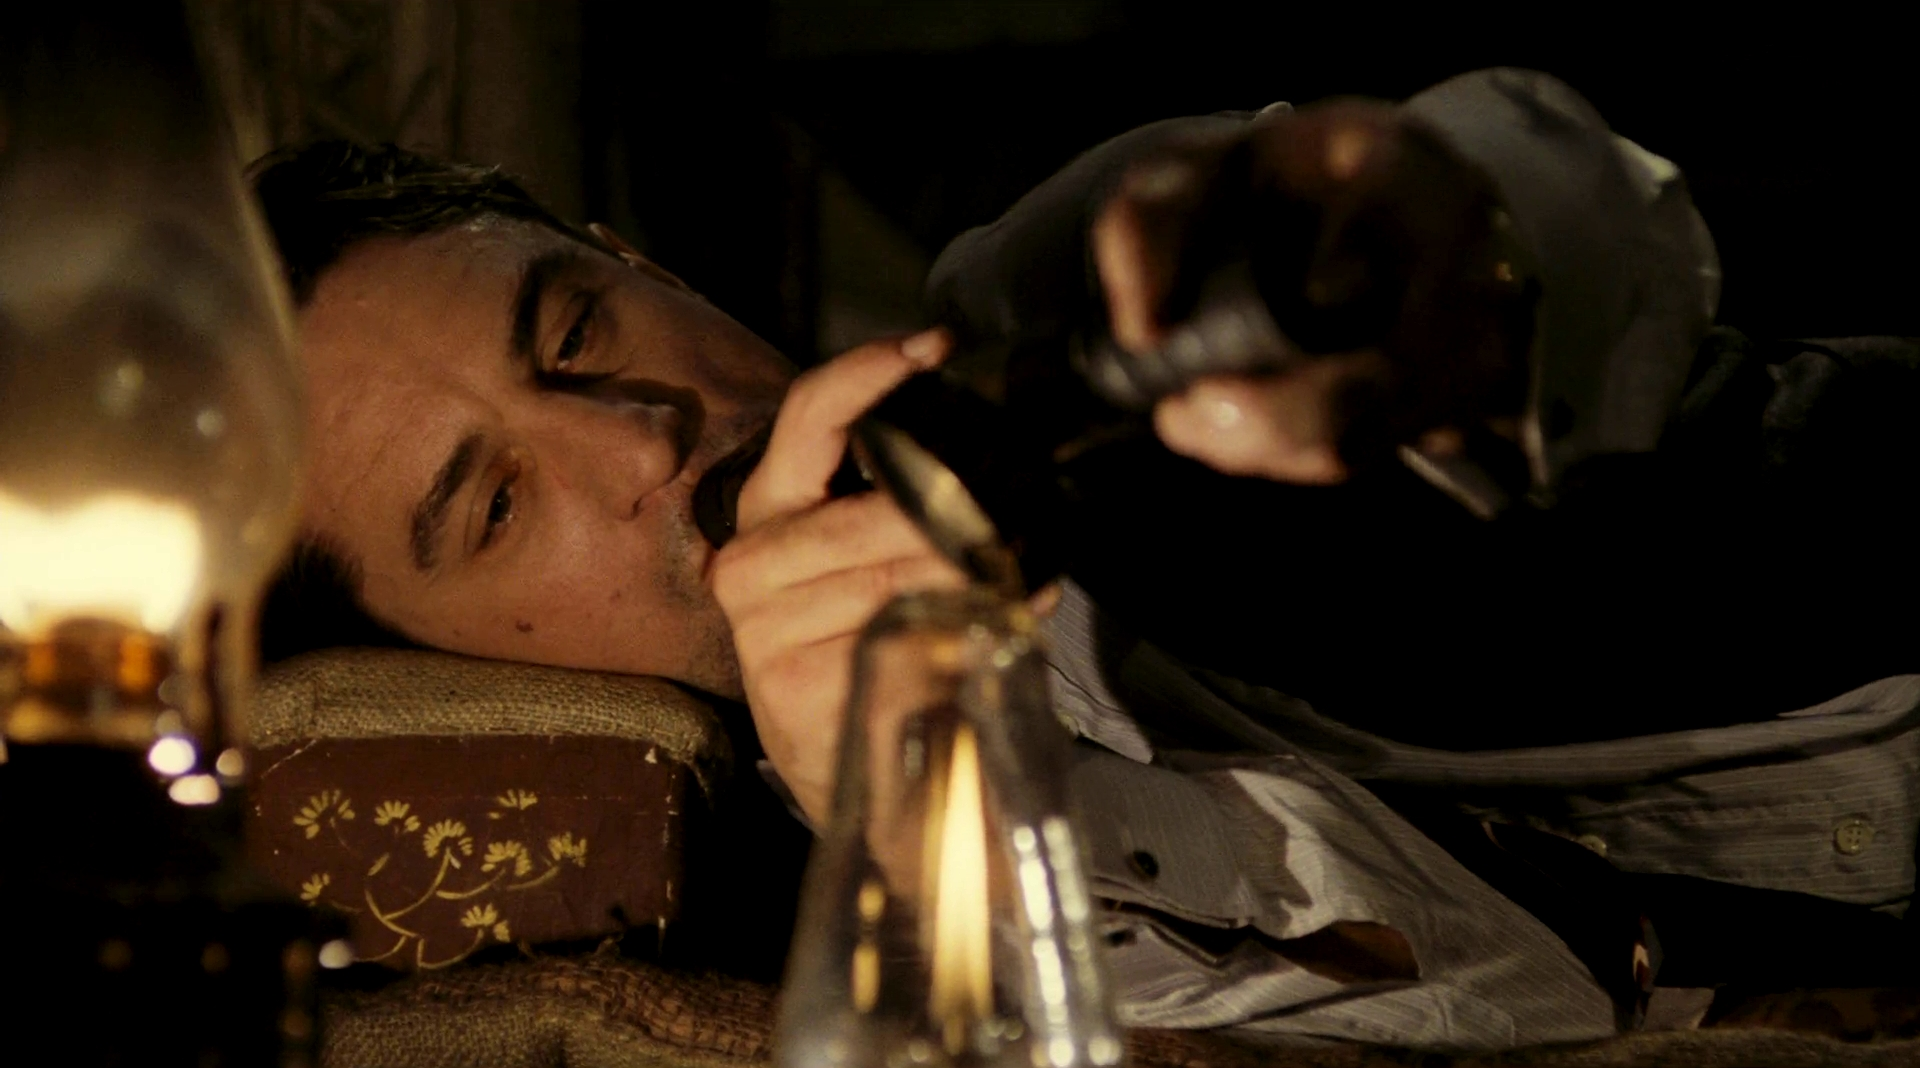 Once upon a time in America - Noodles (Robert De Niro) in the Chinese opium den